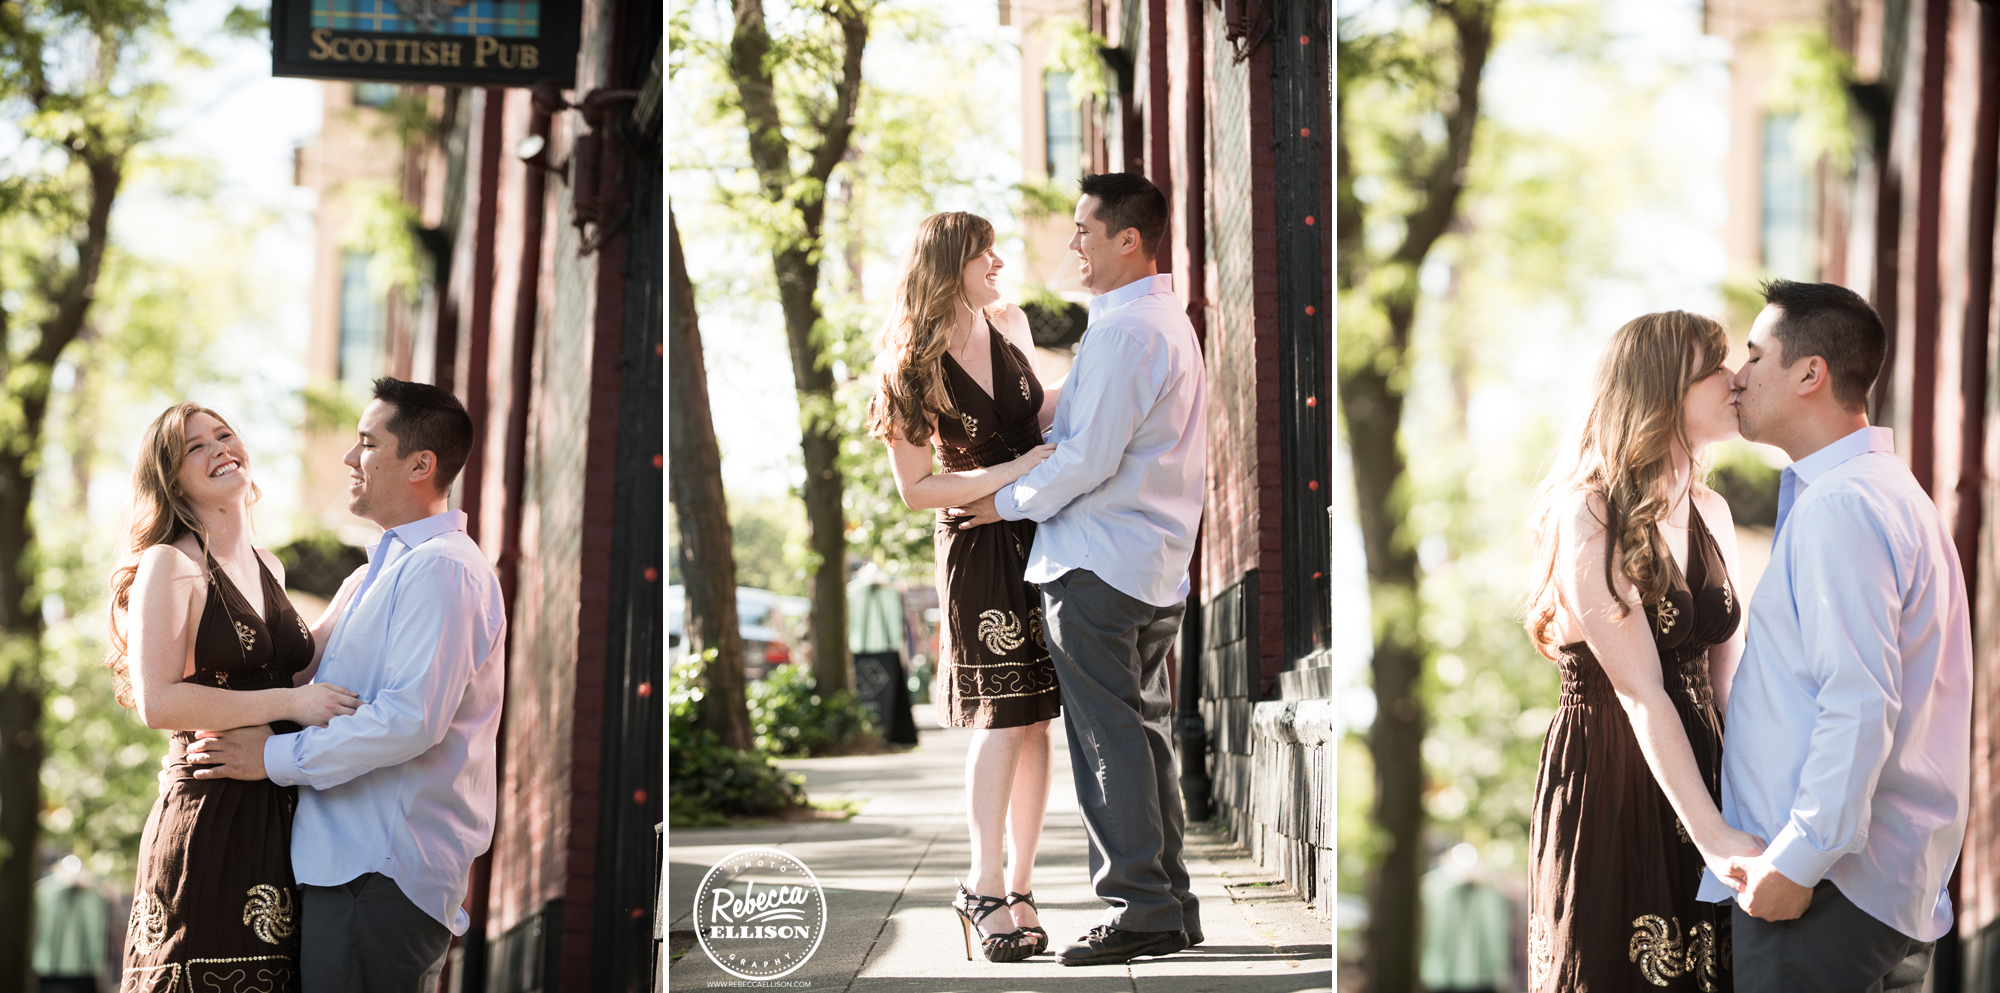 Couple celebrates their engagement in Downtown Ballard photographed by Ballard engagement photographer Rebecca Ellison